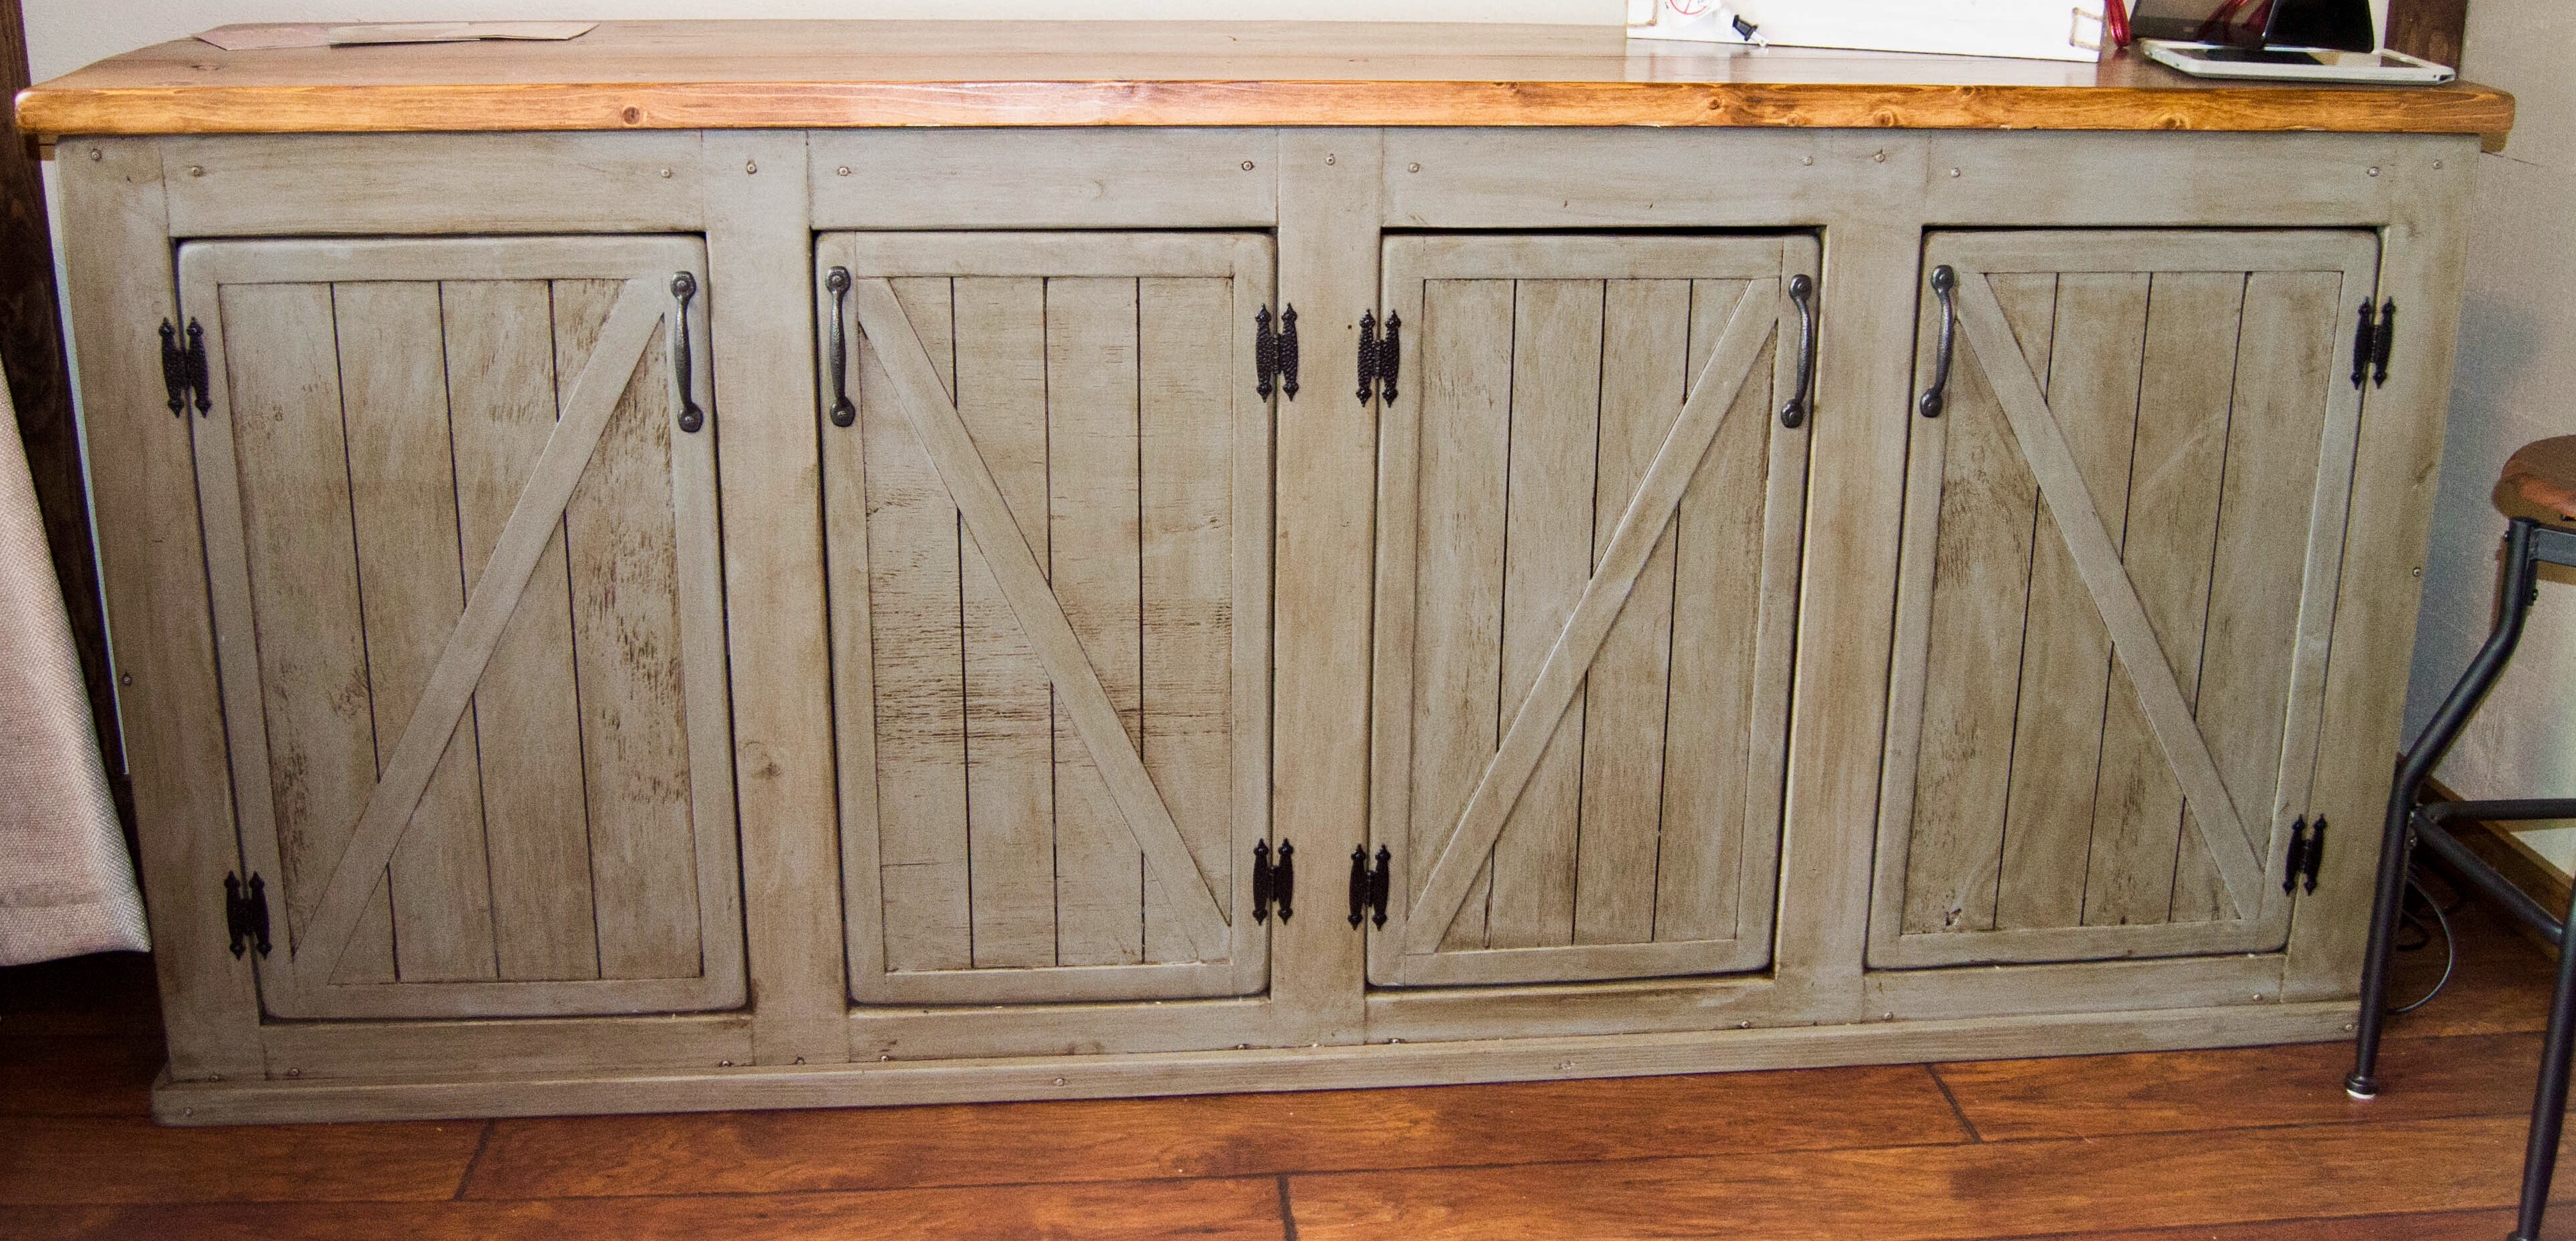 rustic cabinet doors.  Cabinet Additional Photos Inside Rustic Cabinet Doors Ana White